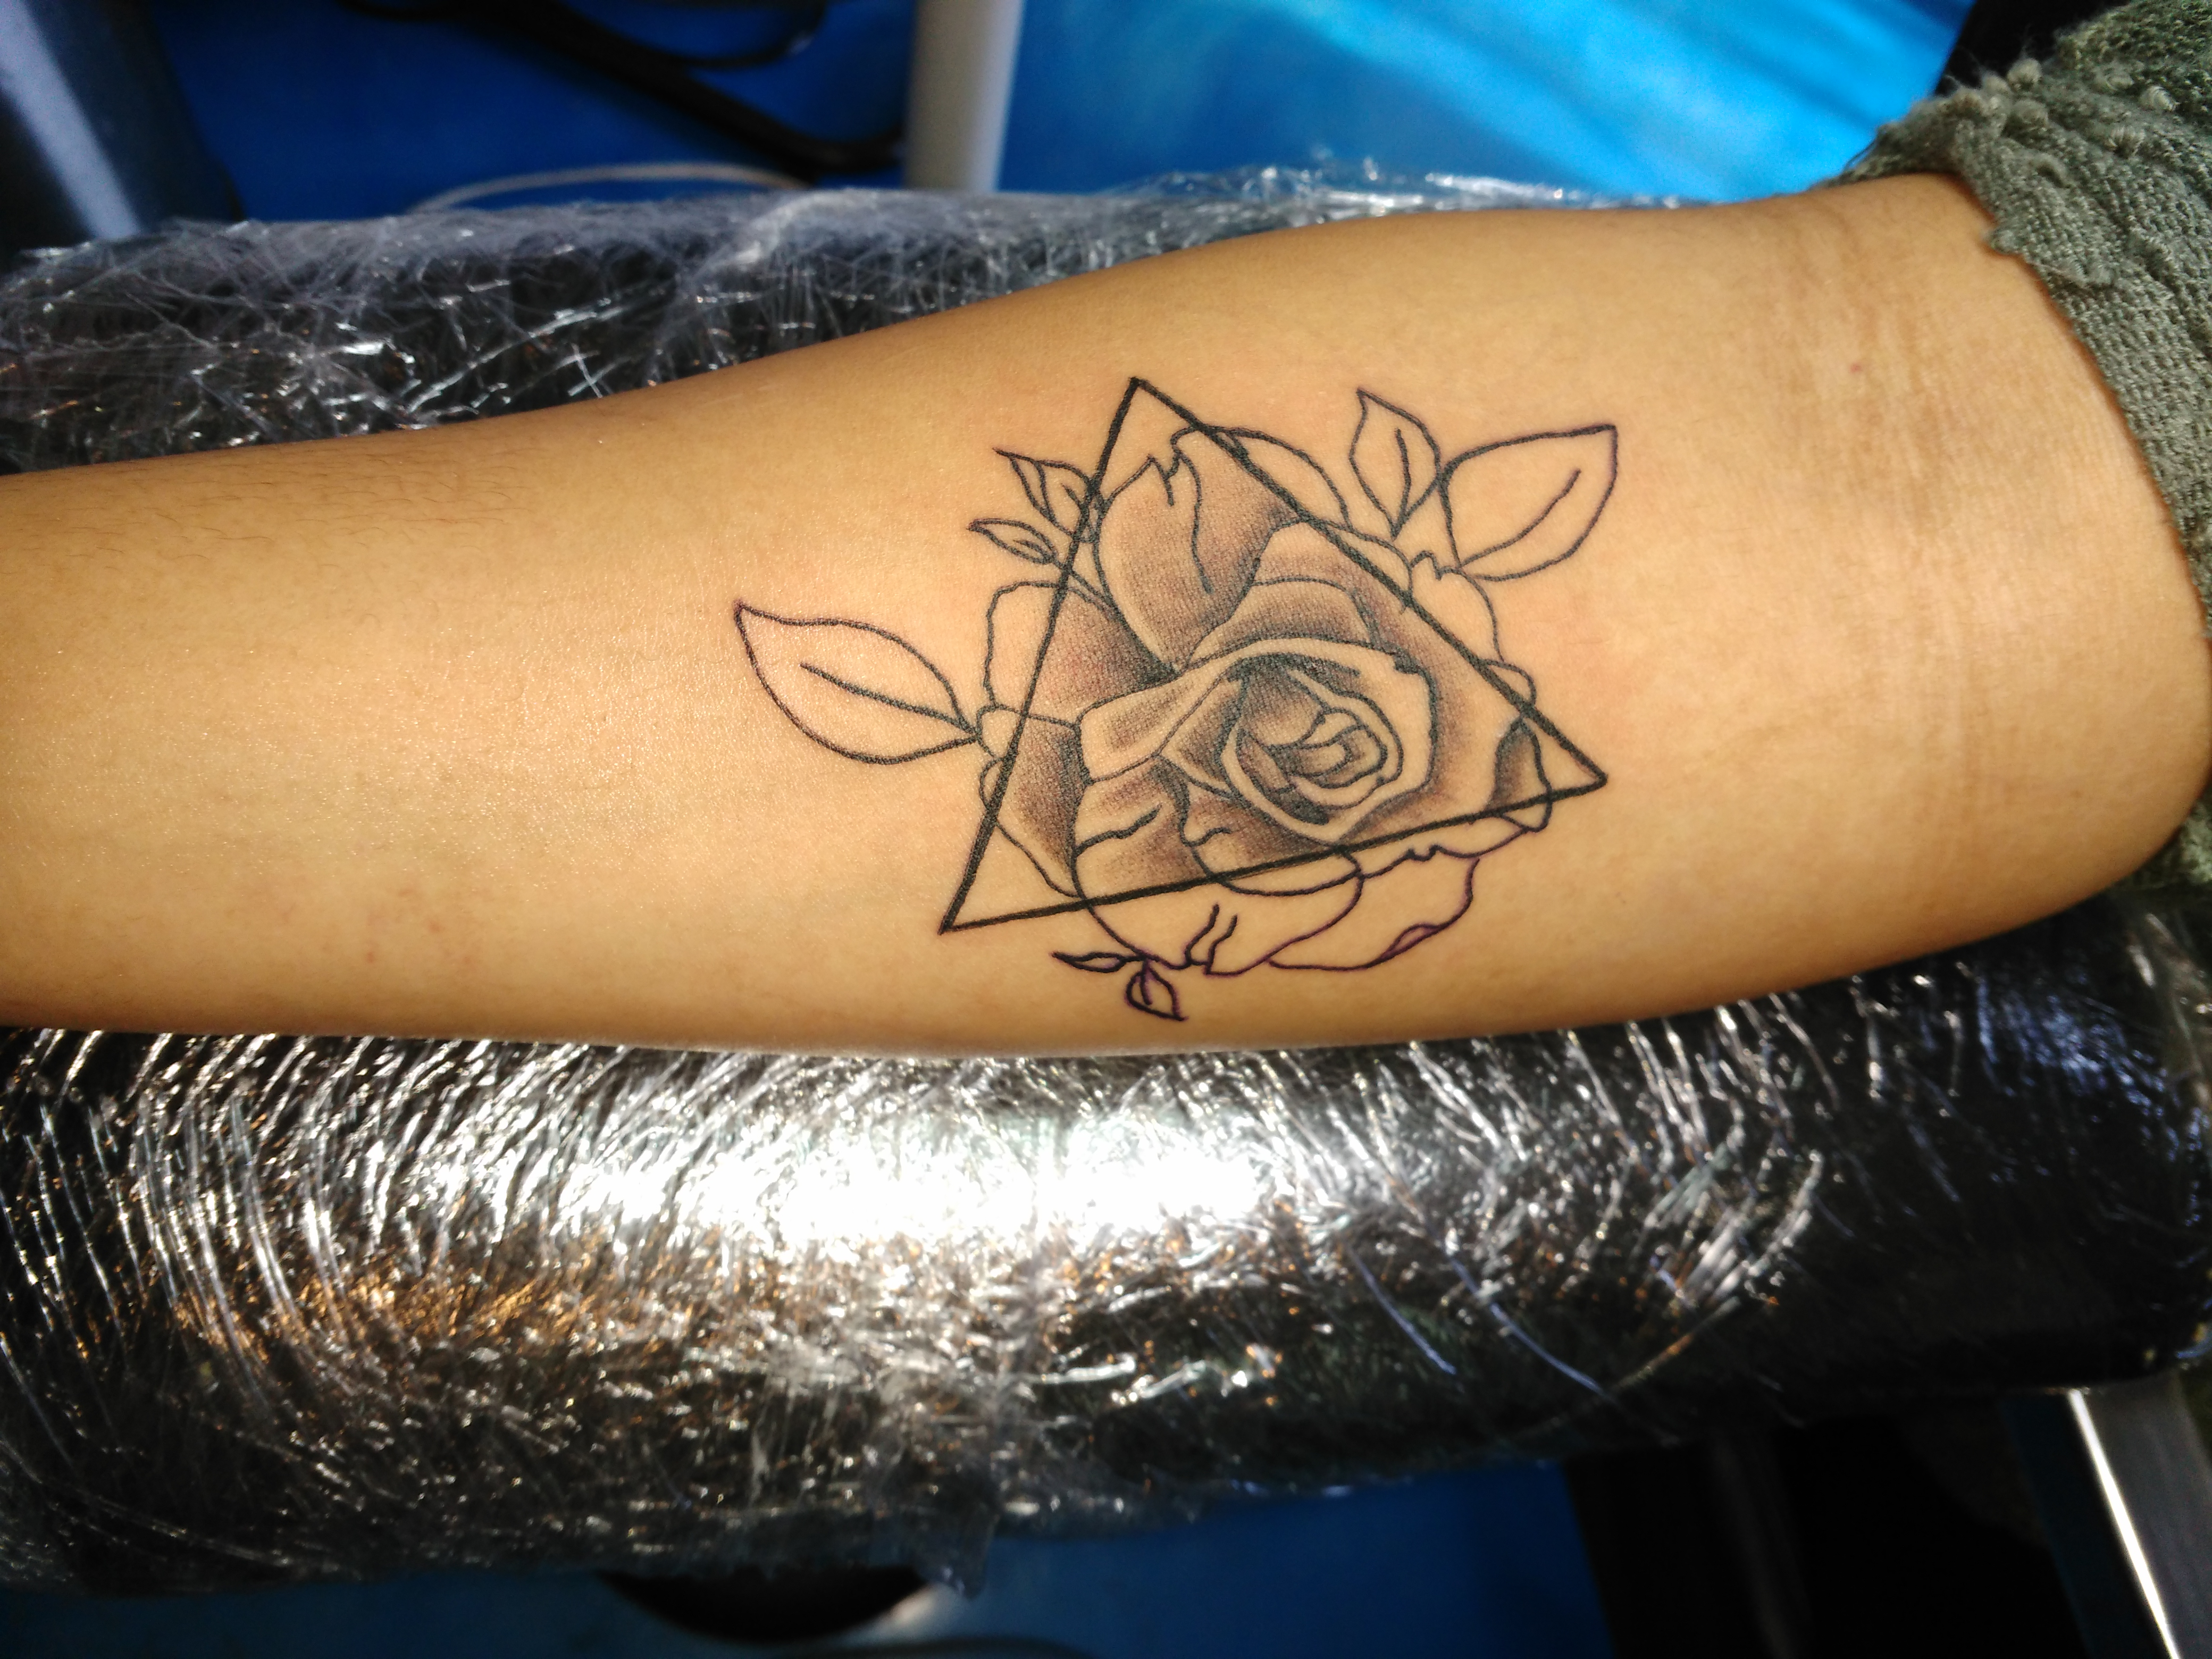 Jamy's spin on the rose